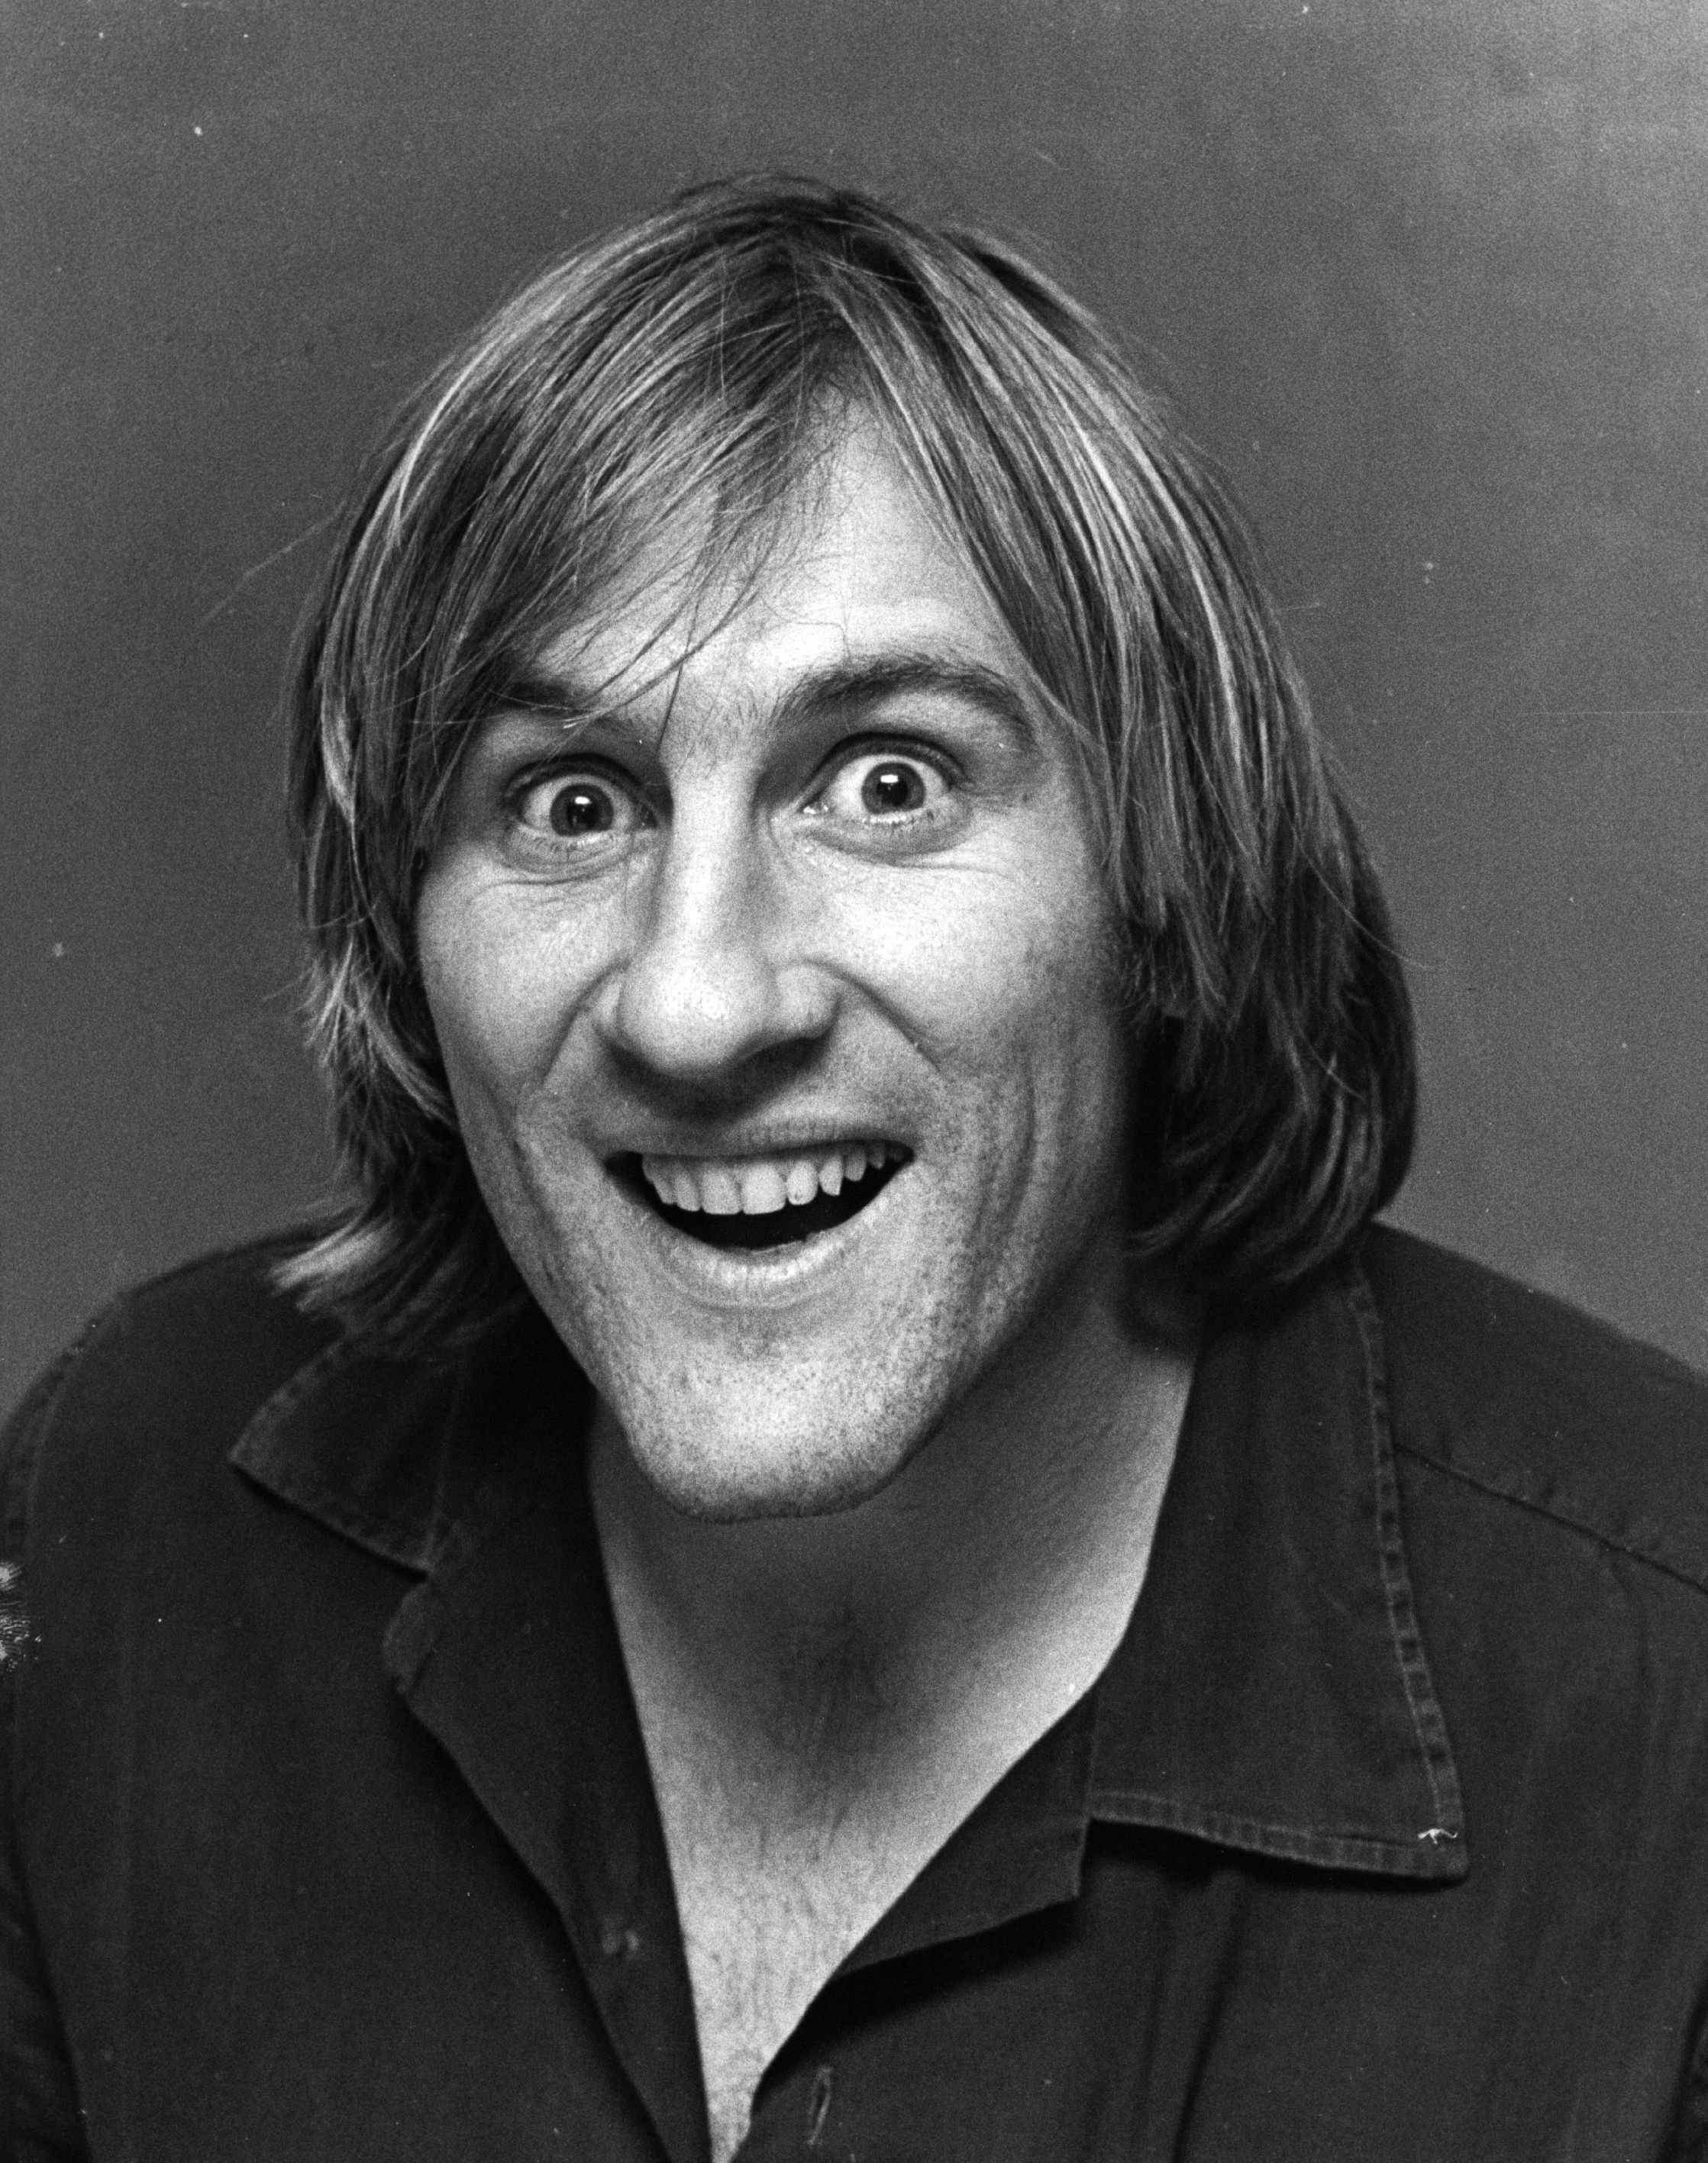 Le comédien Gérard Depardieu. l Source : Getty Images